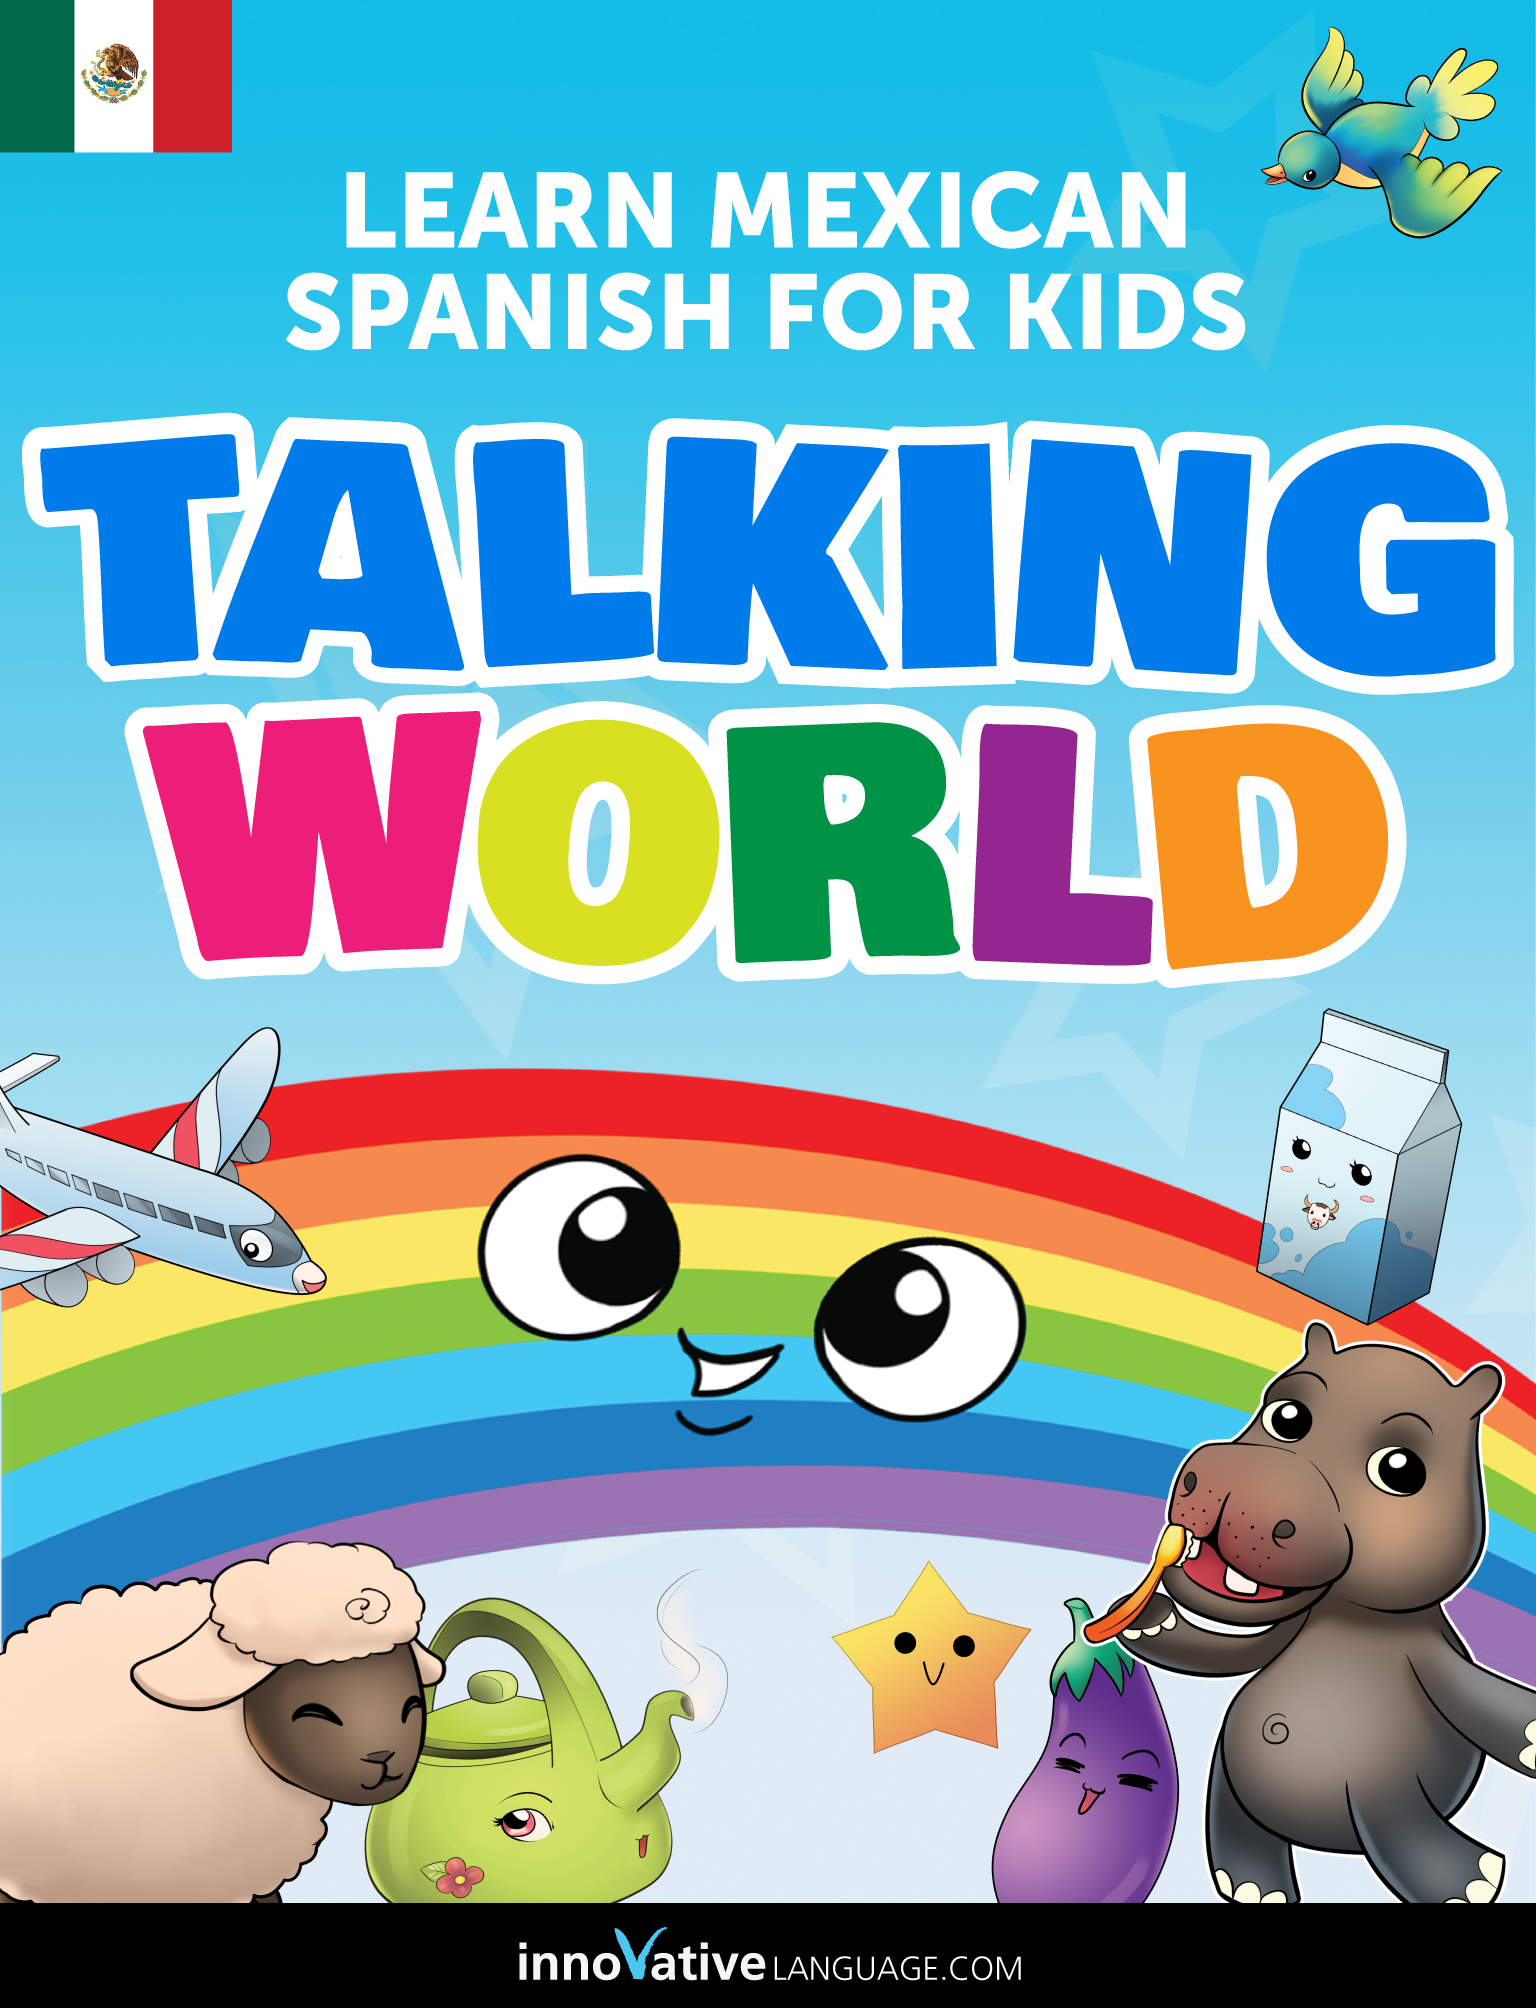 New iBook! Learn Mexican Spanish for Kids: Talking World for the iPad